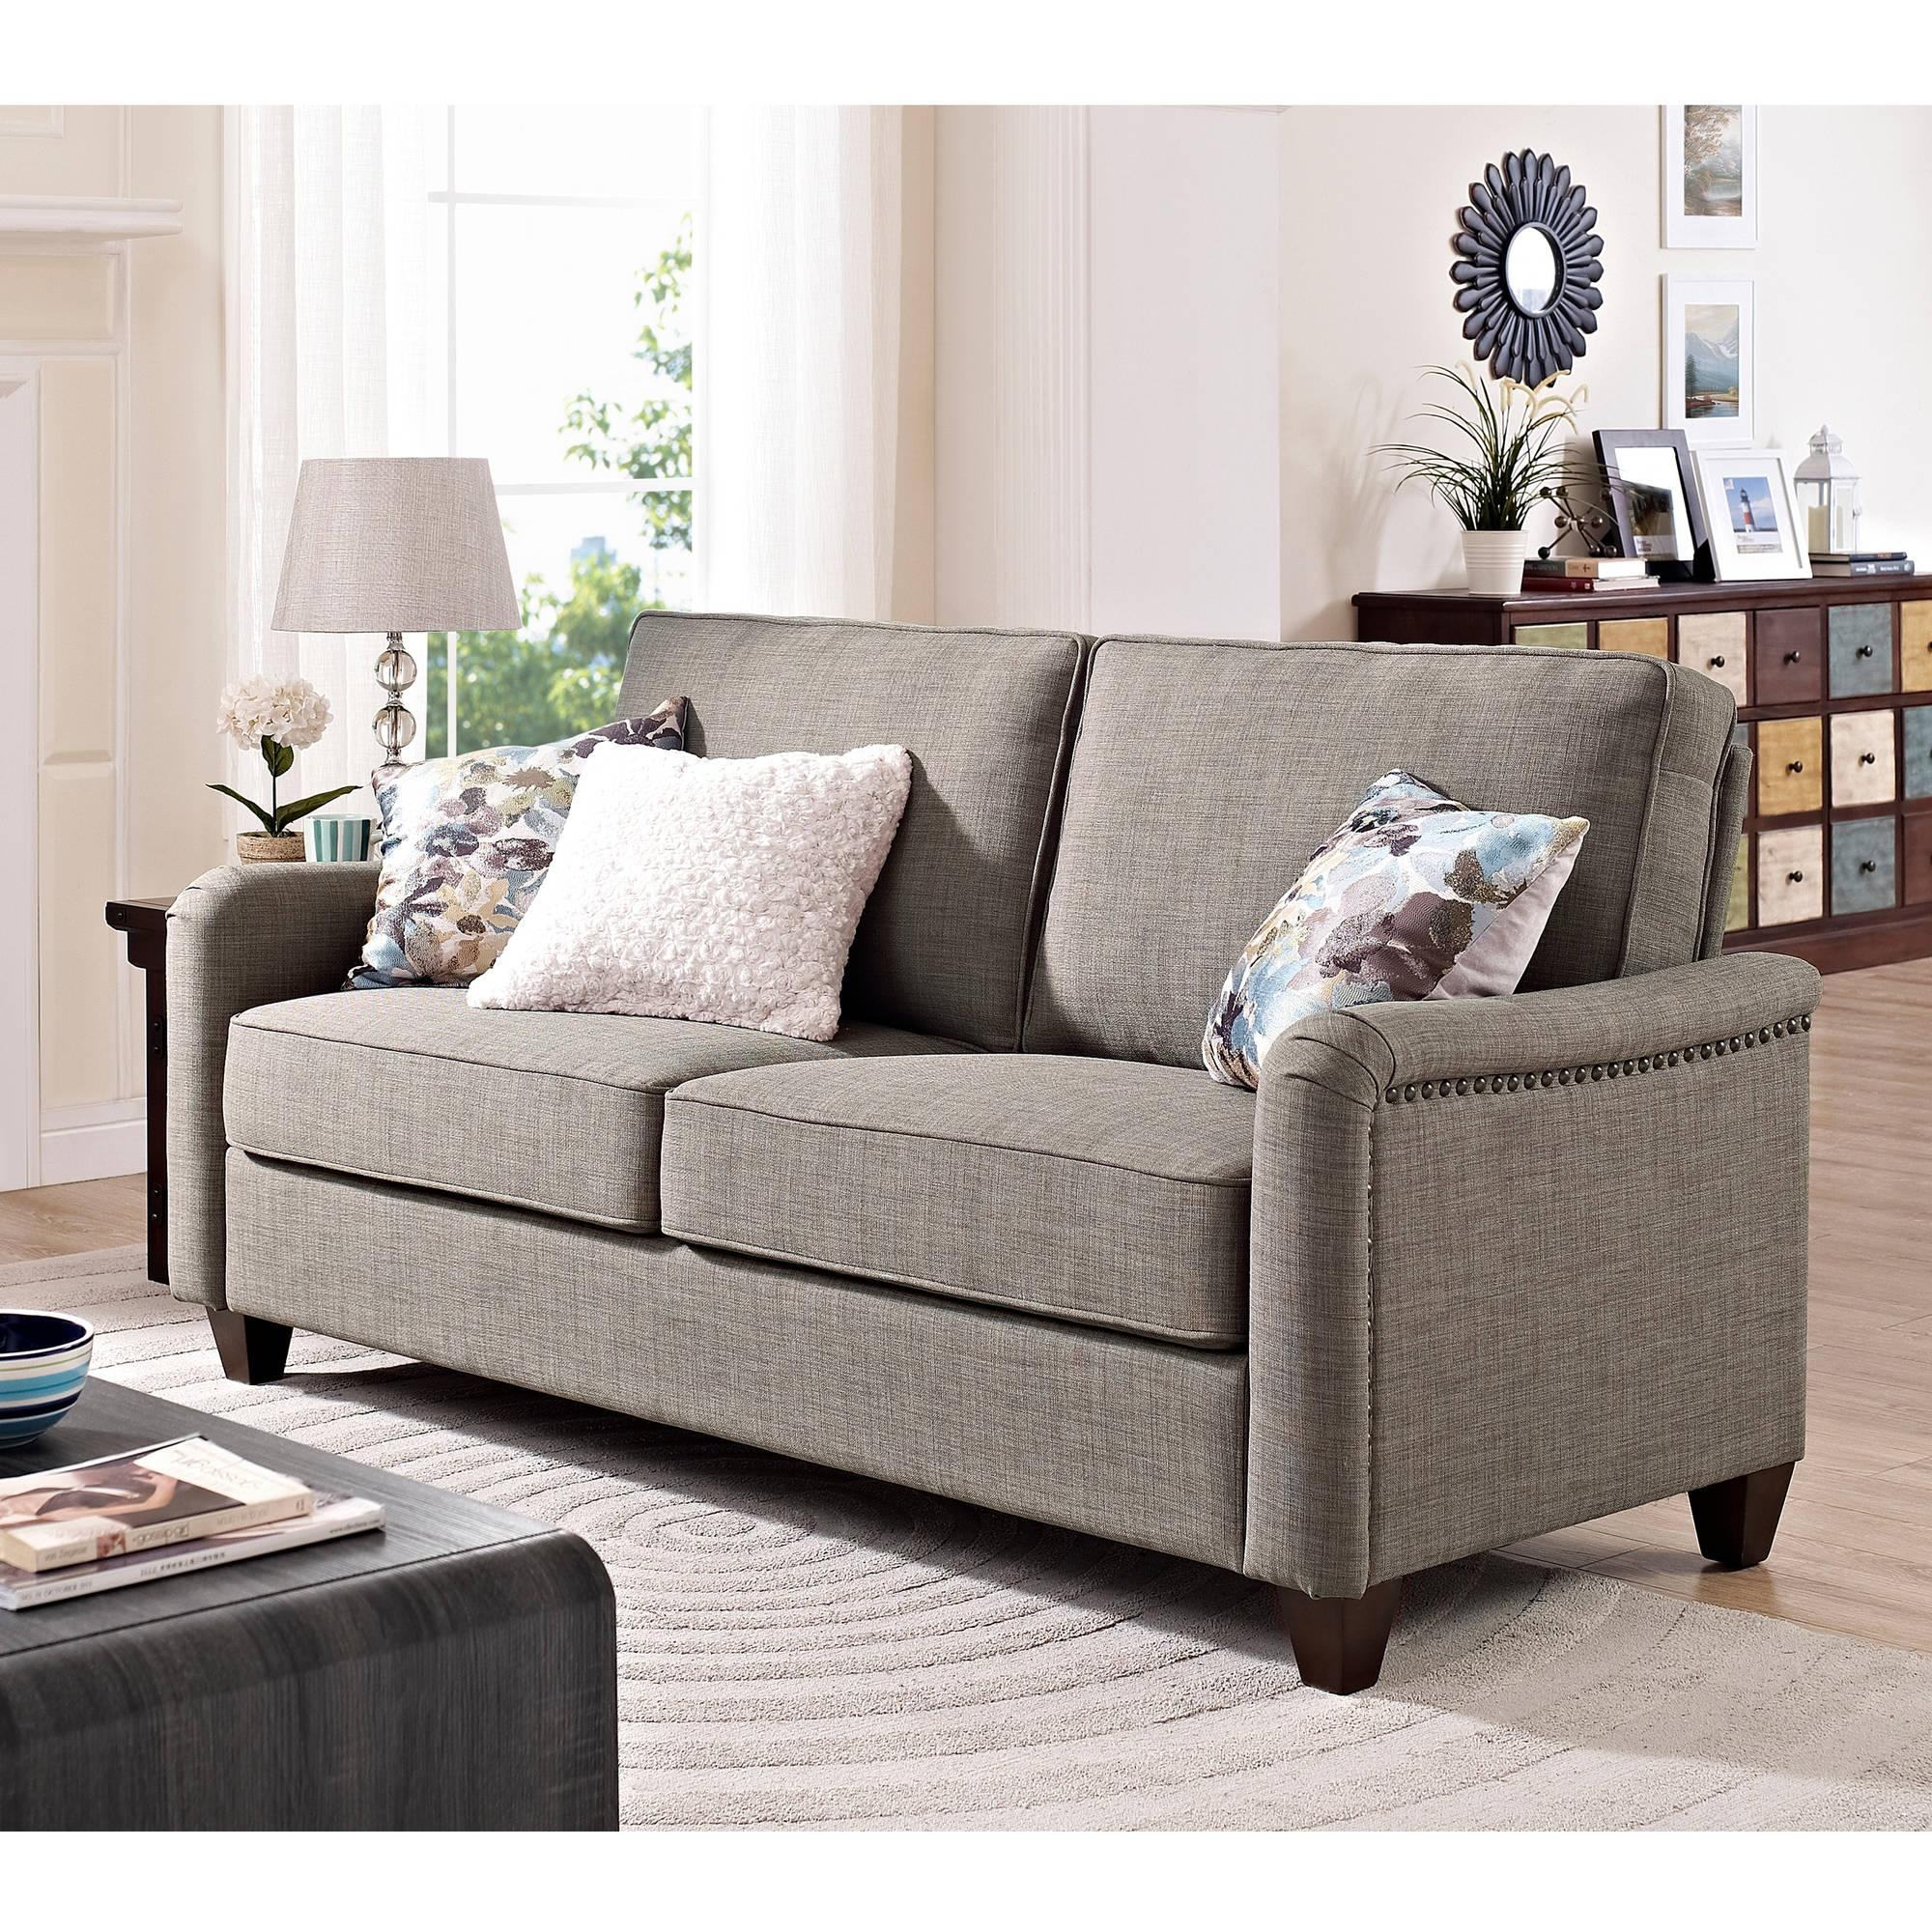 Better Homes And Gardens Grayson Sofa With Nailheads, Grey Within Wallmart Sofa (Image 6 of 20)